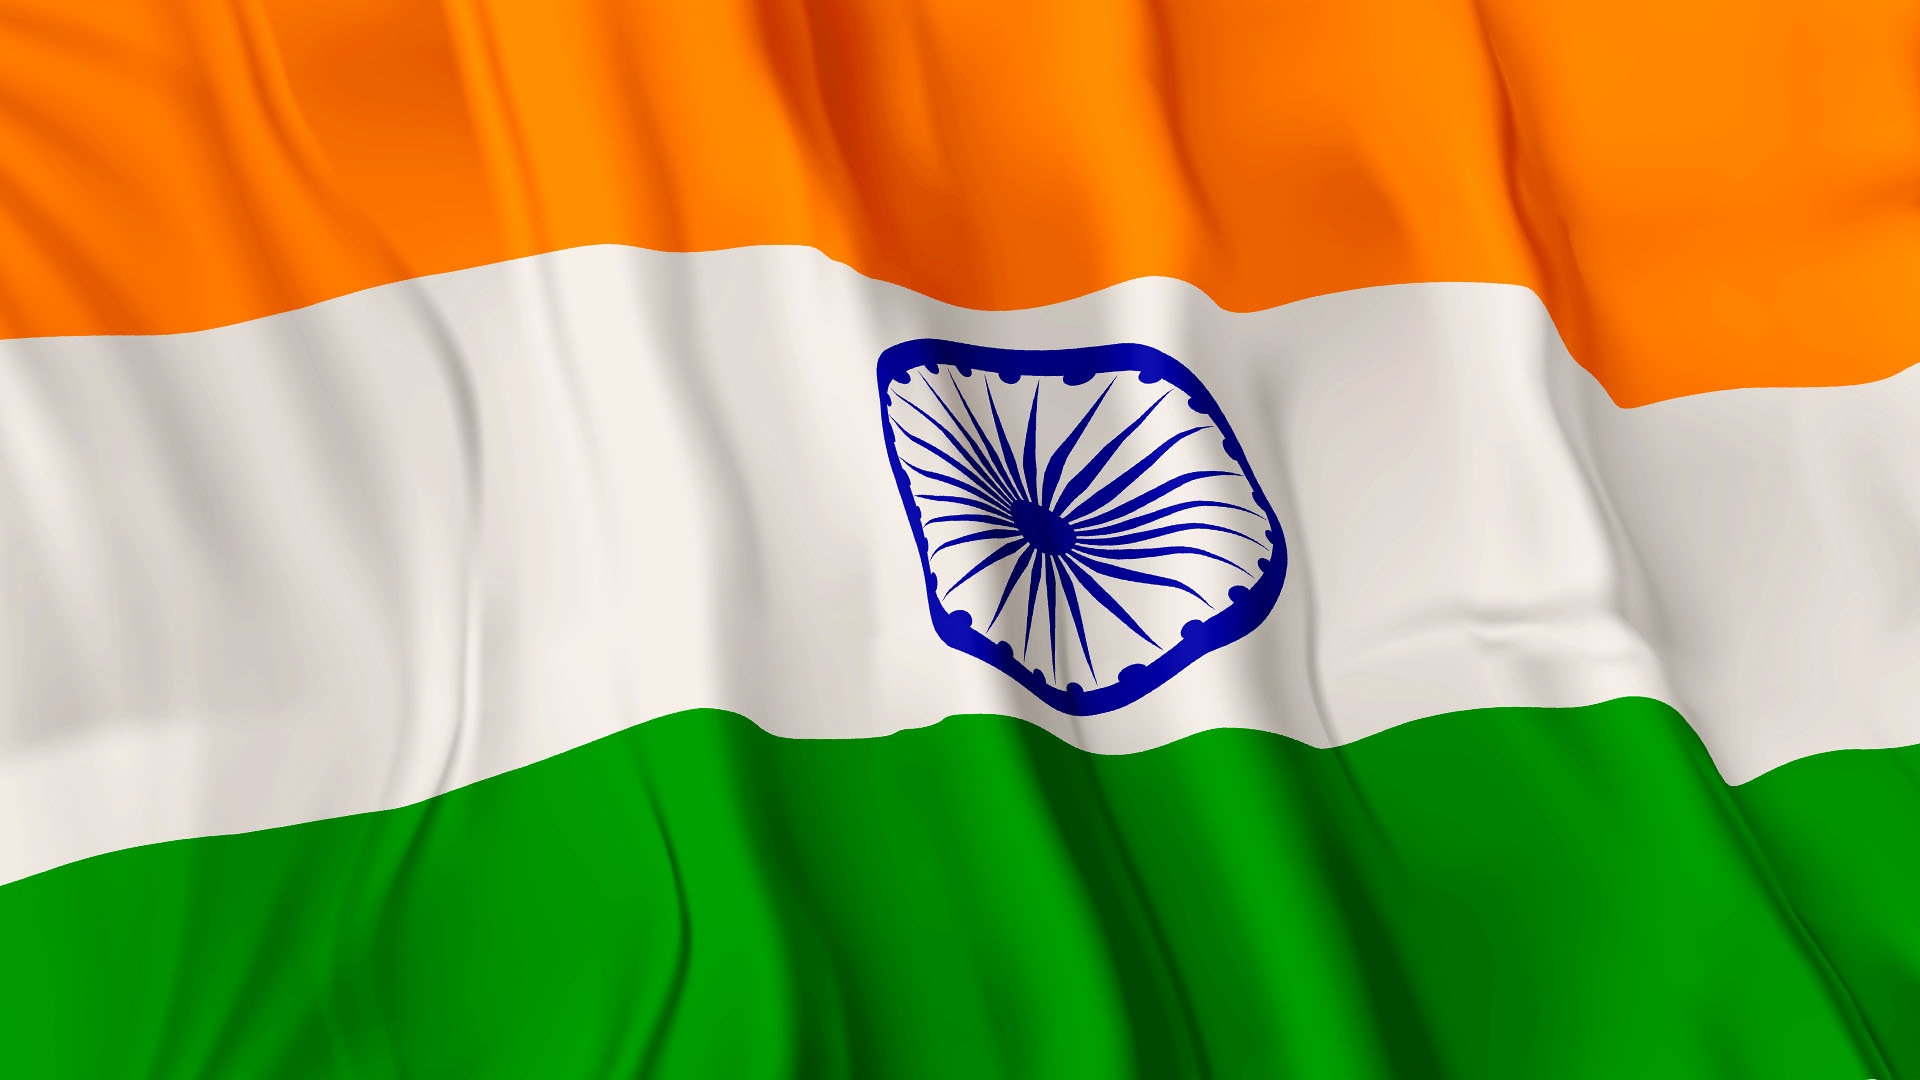 Indian Flag Full HD Tricolour Flag of India Waving